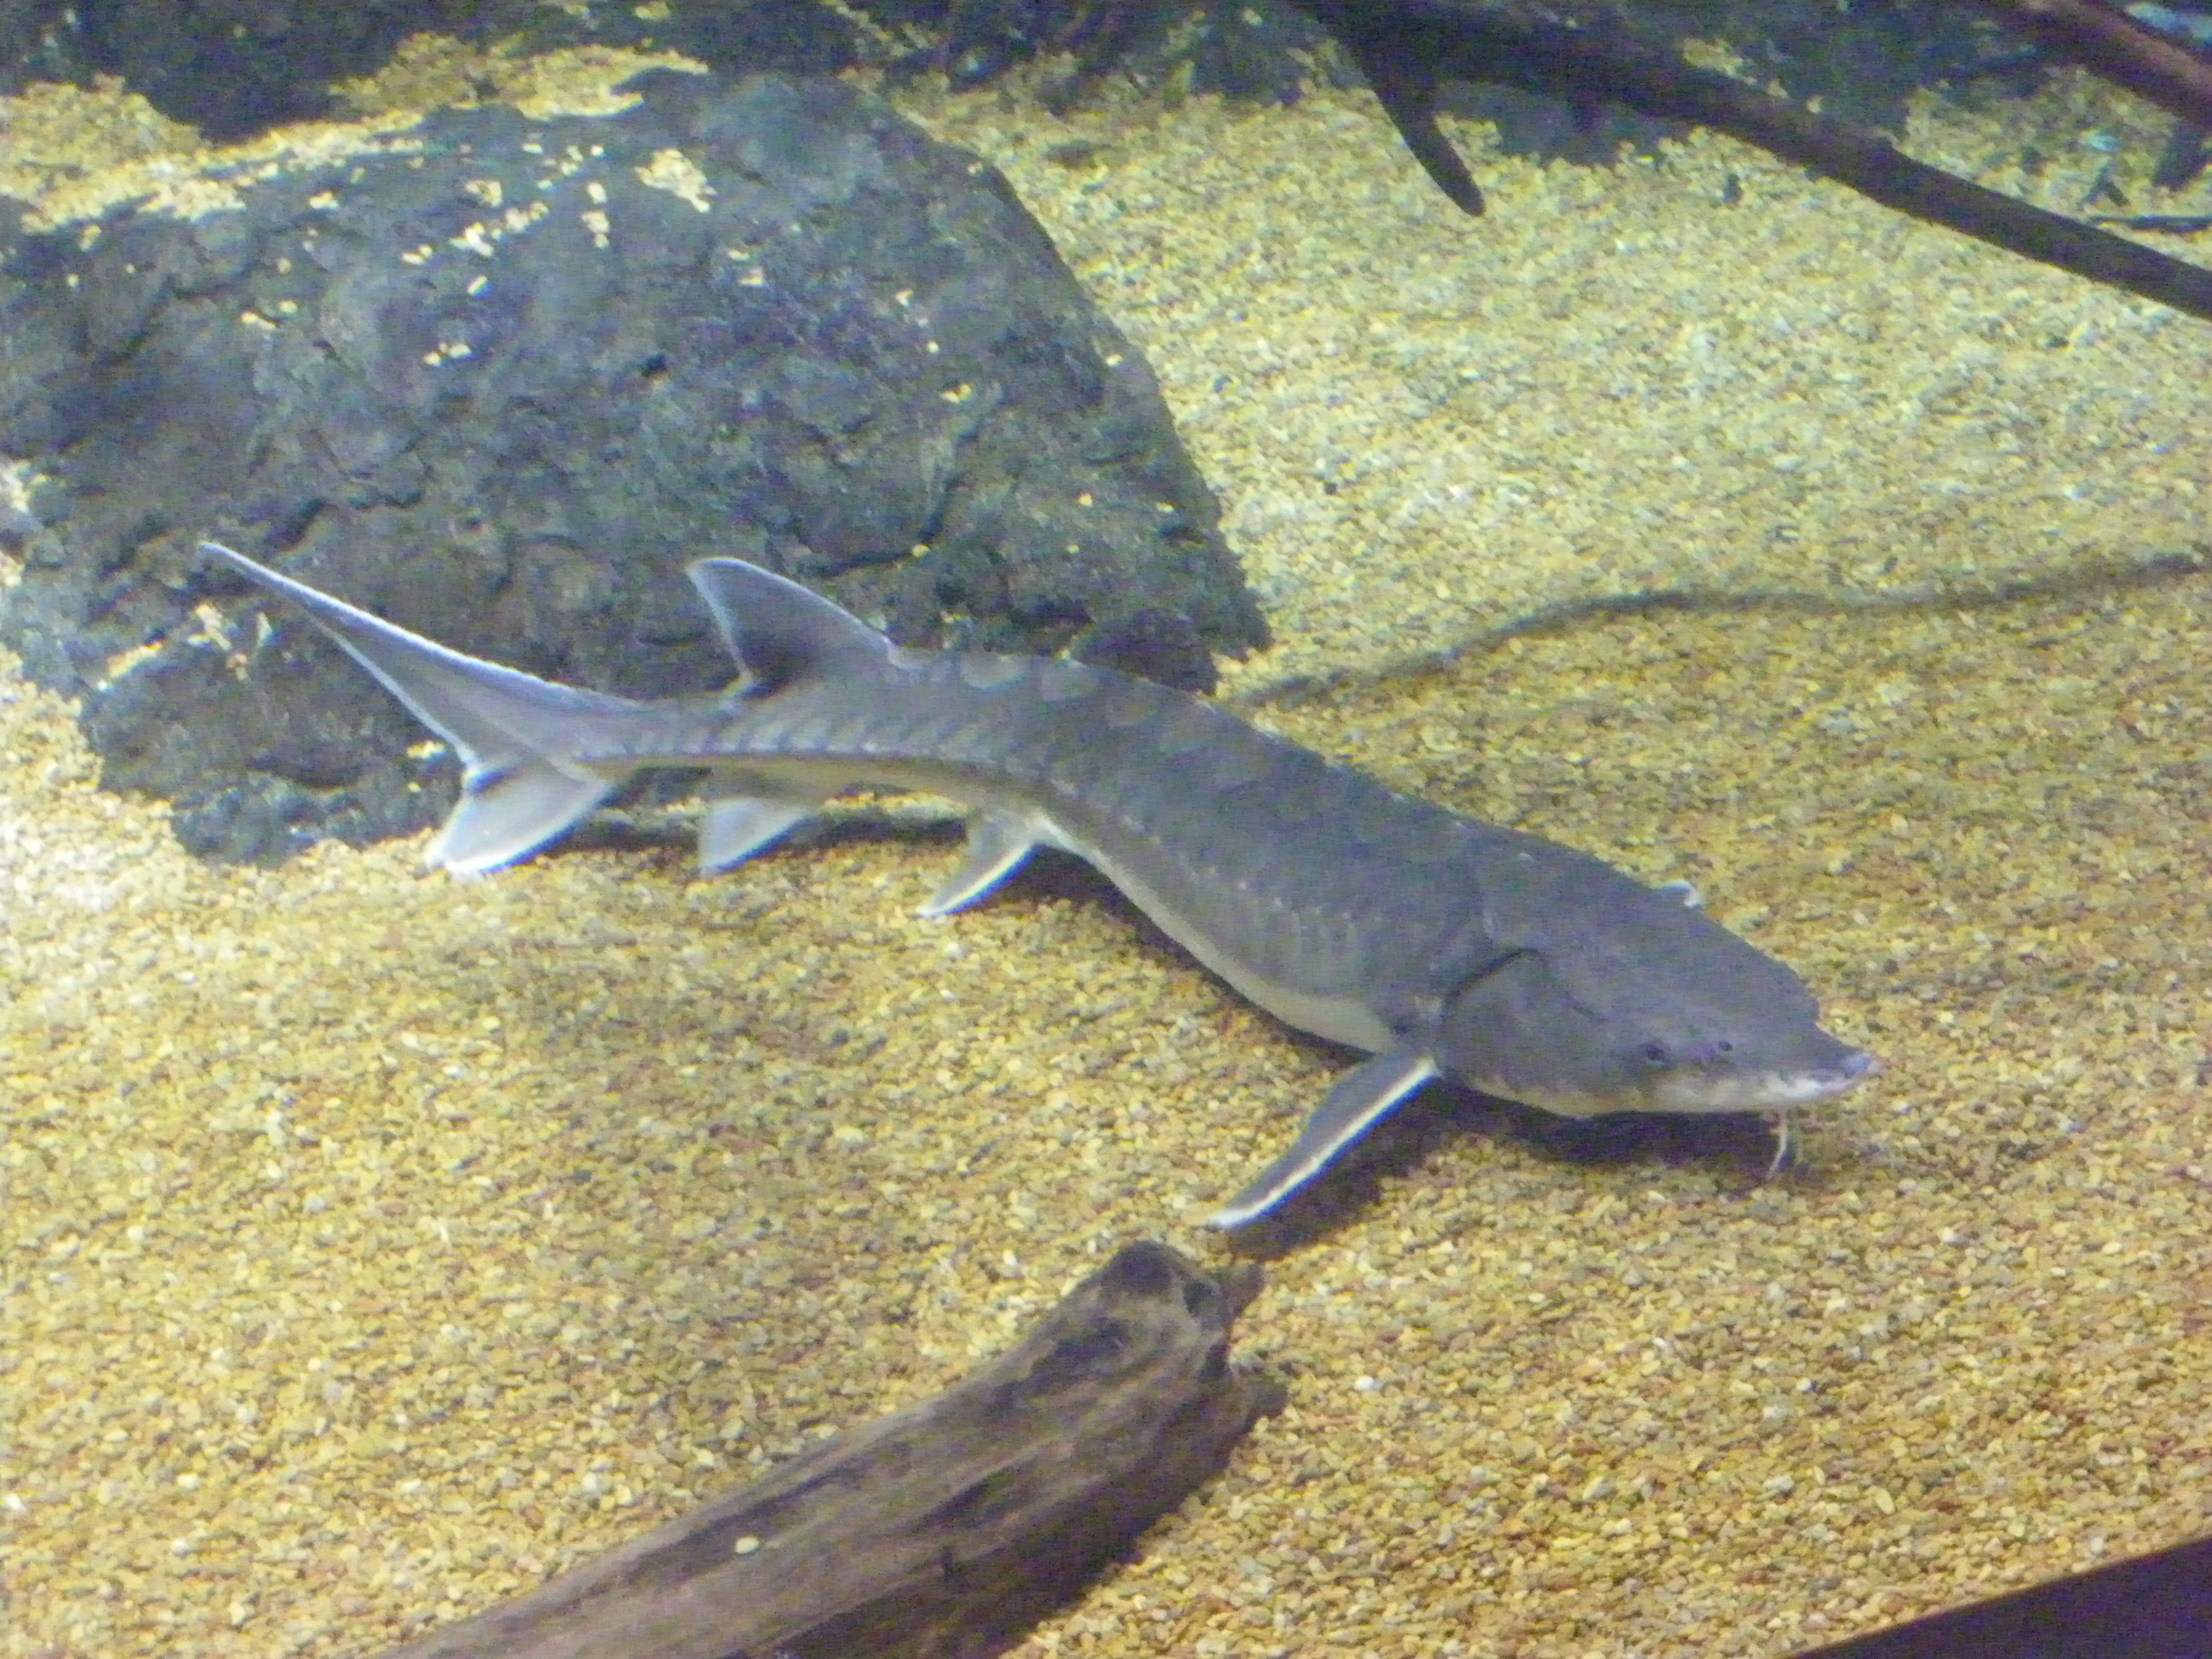 Baby atlantic sturgeon